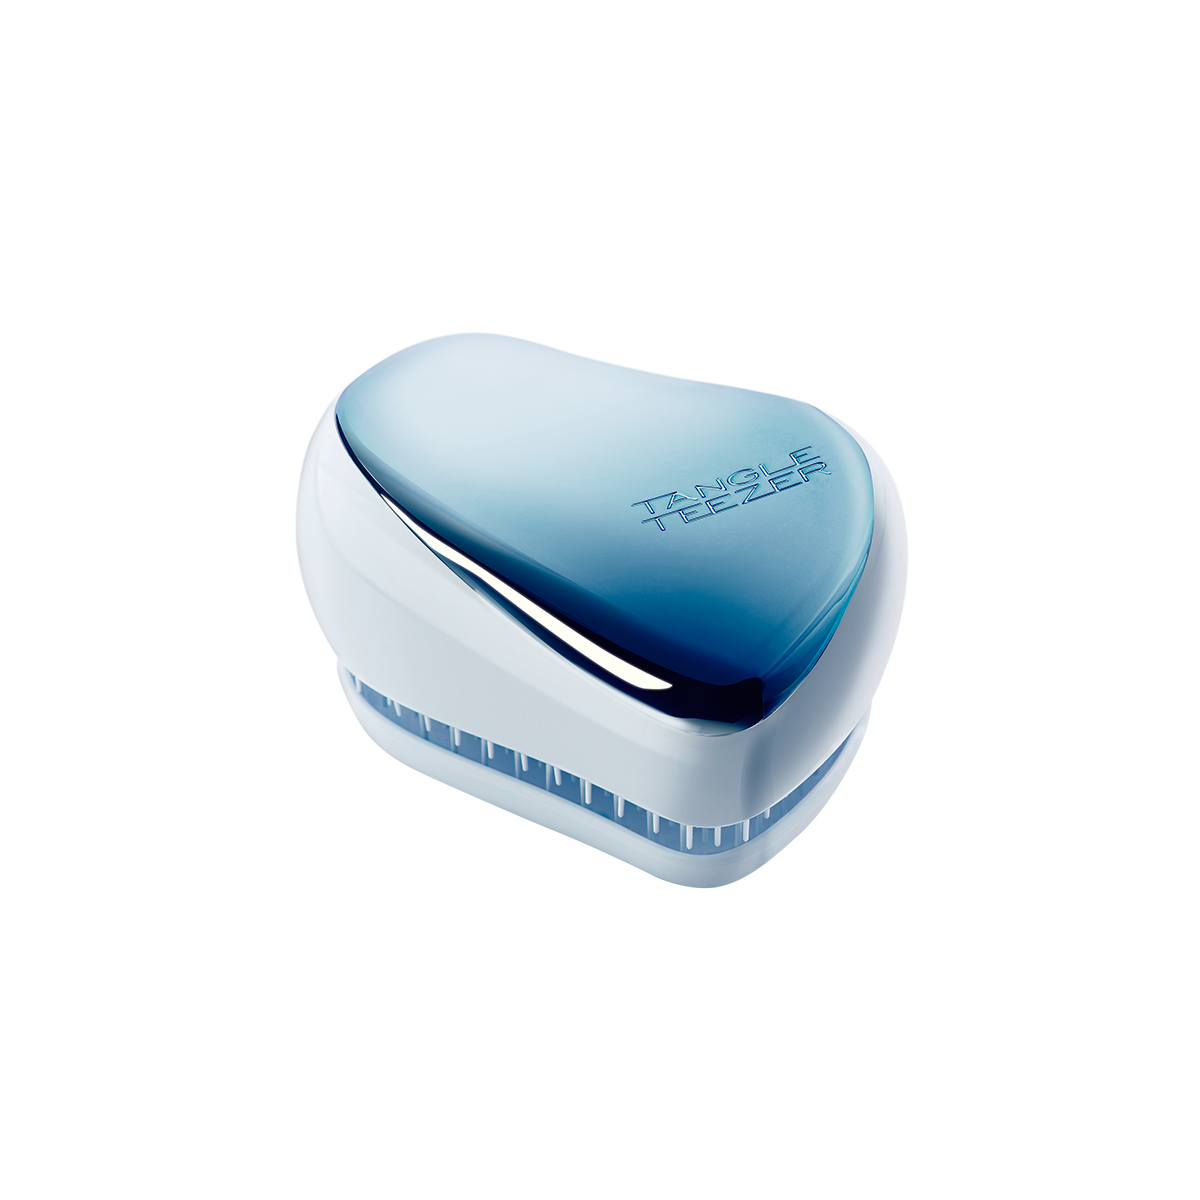 Расческа Tangle Teezer Compact Styler Sky Blue Delight Chrome